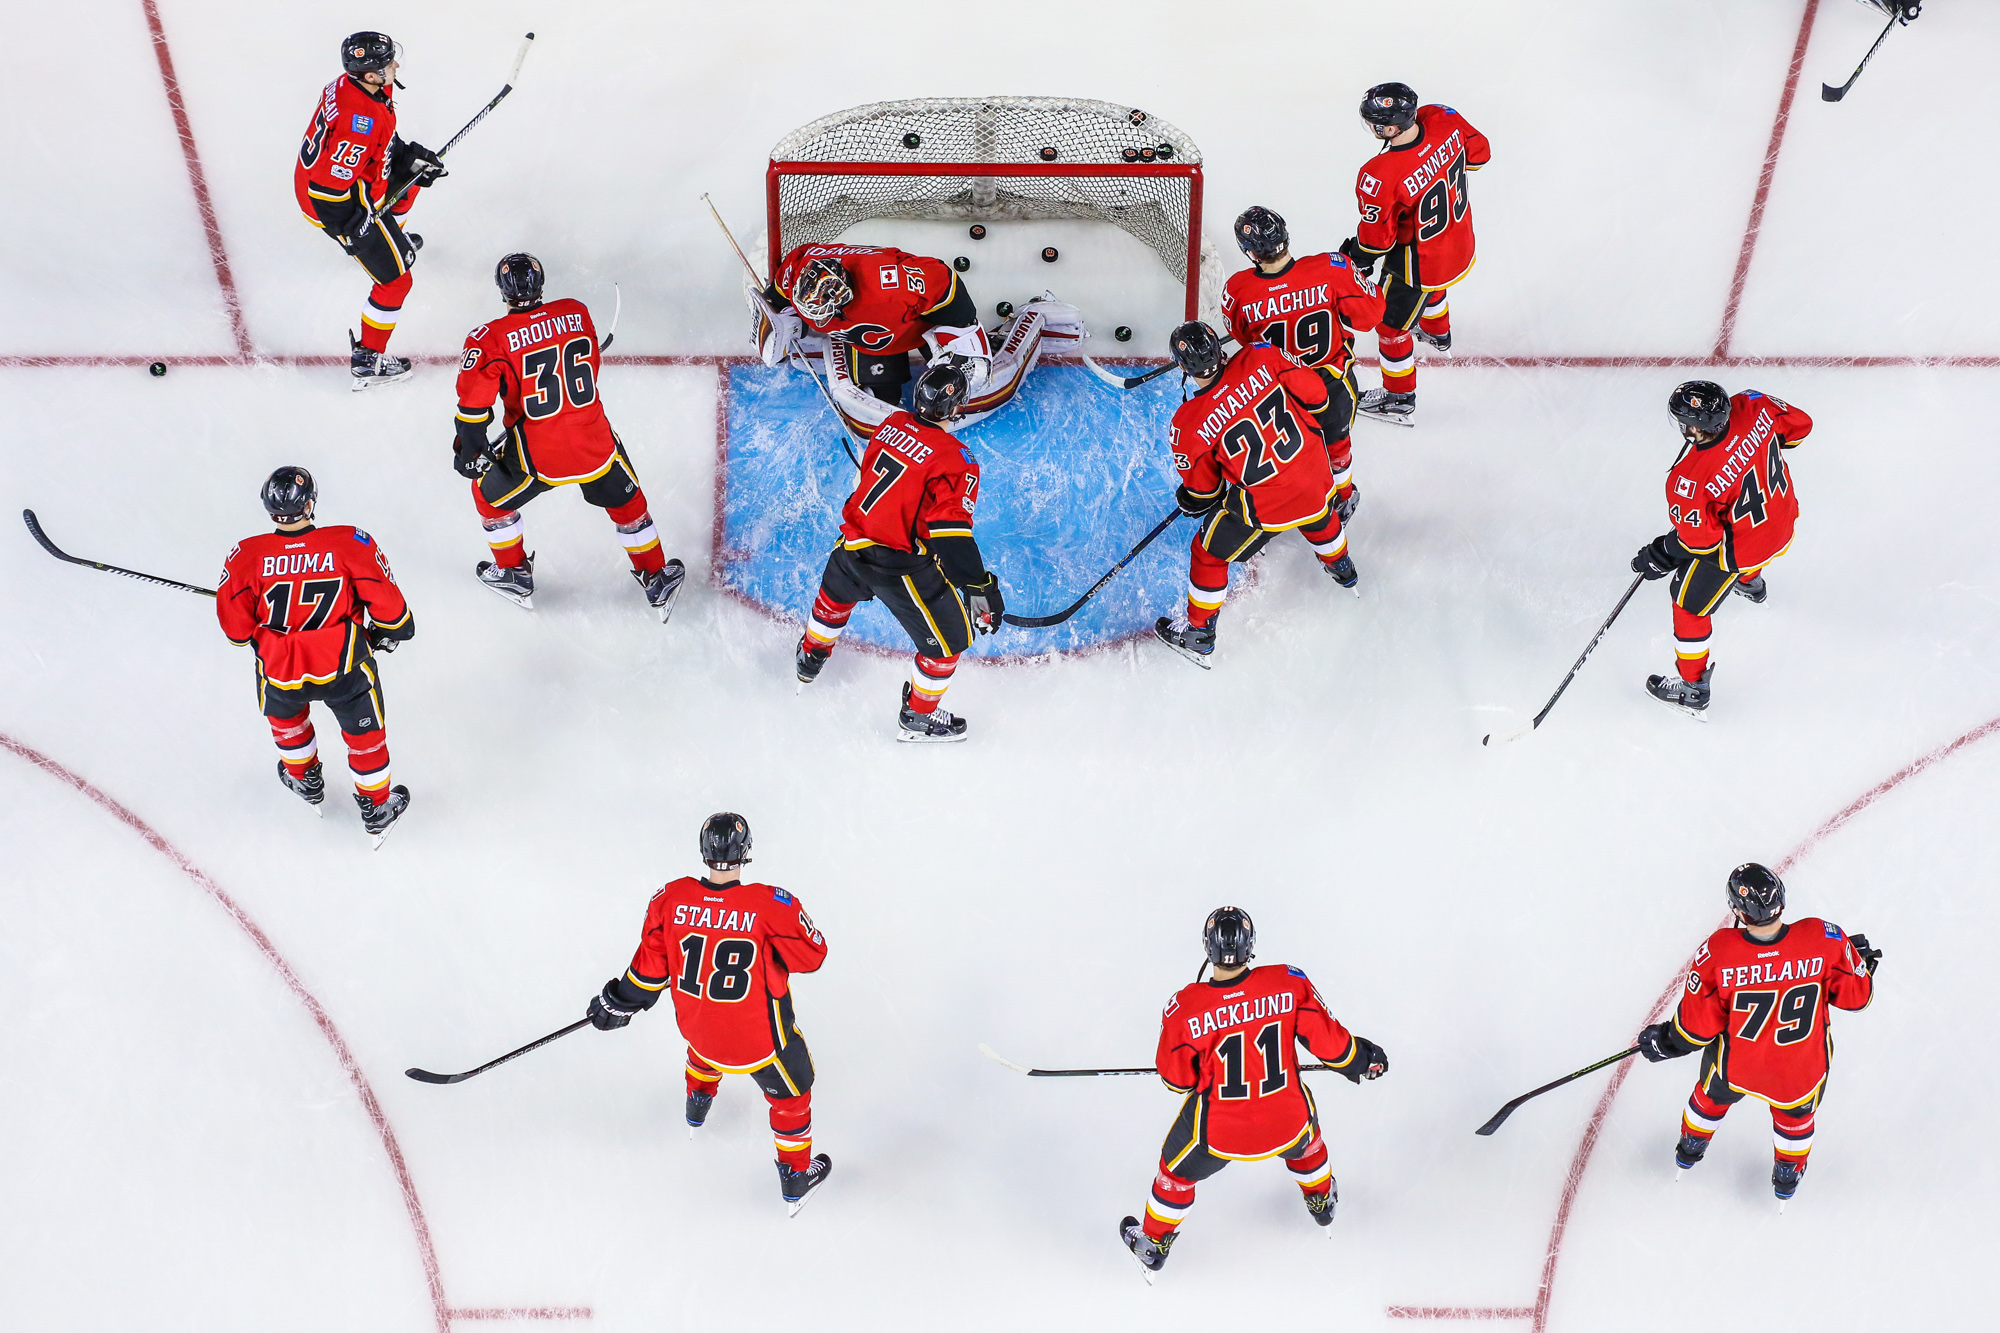 10021678-nhl-stanley-cup-playoffs-anaheim-ducks-at-calgary-flames